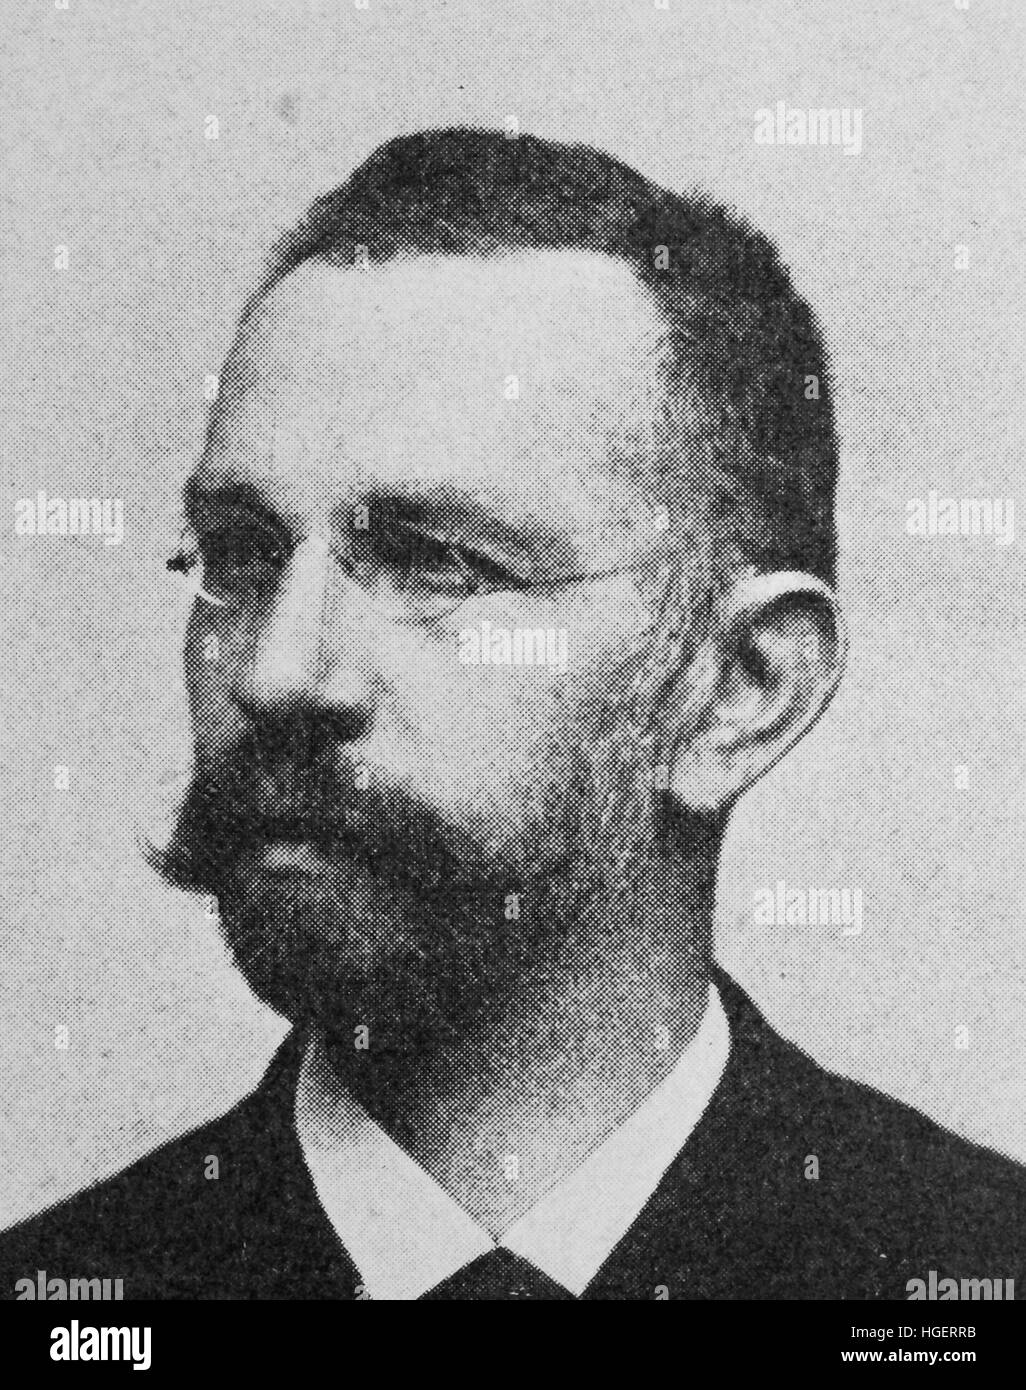 Carl von Bach, Born March 8, 1847; Died October 10, 1931; Full name Julius Carl von Bach, was a German mechanical - Stock Image